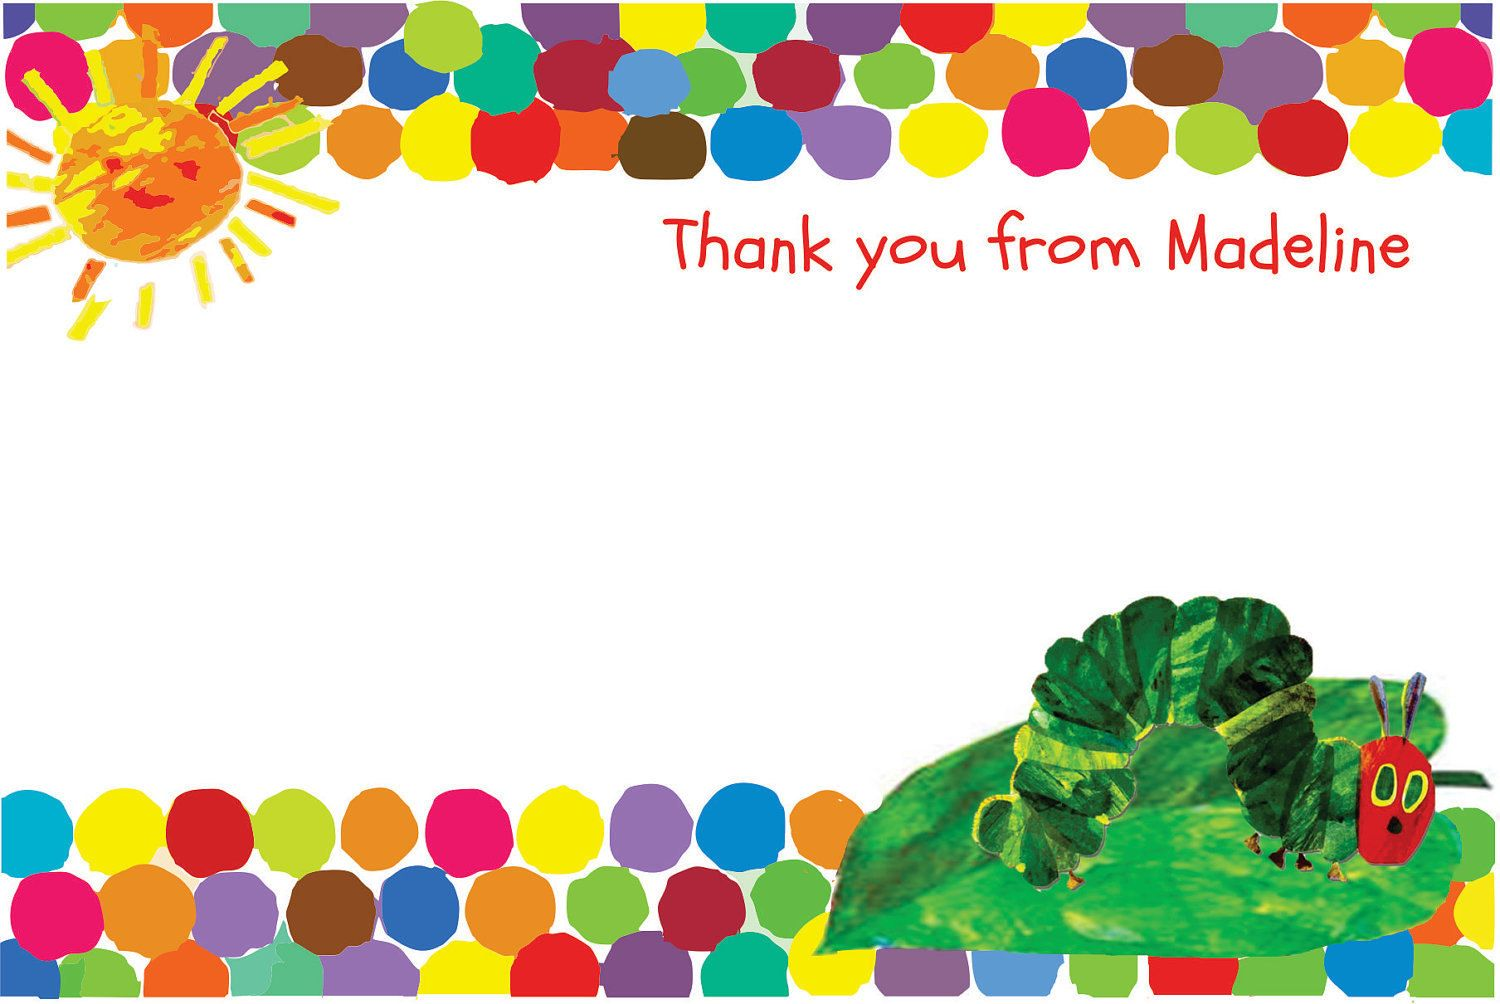 Custom printable a very hungry caterpillar birthday thank you card custom printable a very hungry caterpillar birthday thank you card 4x6 500 via etsy bookmarktalkfo Image collections